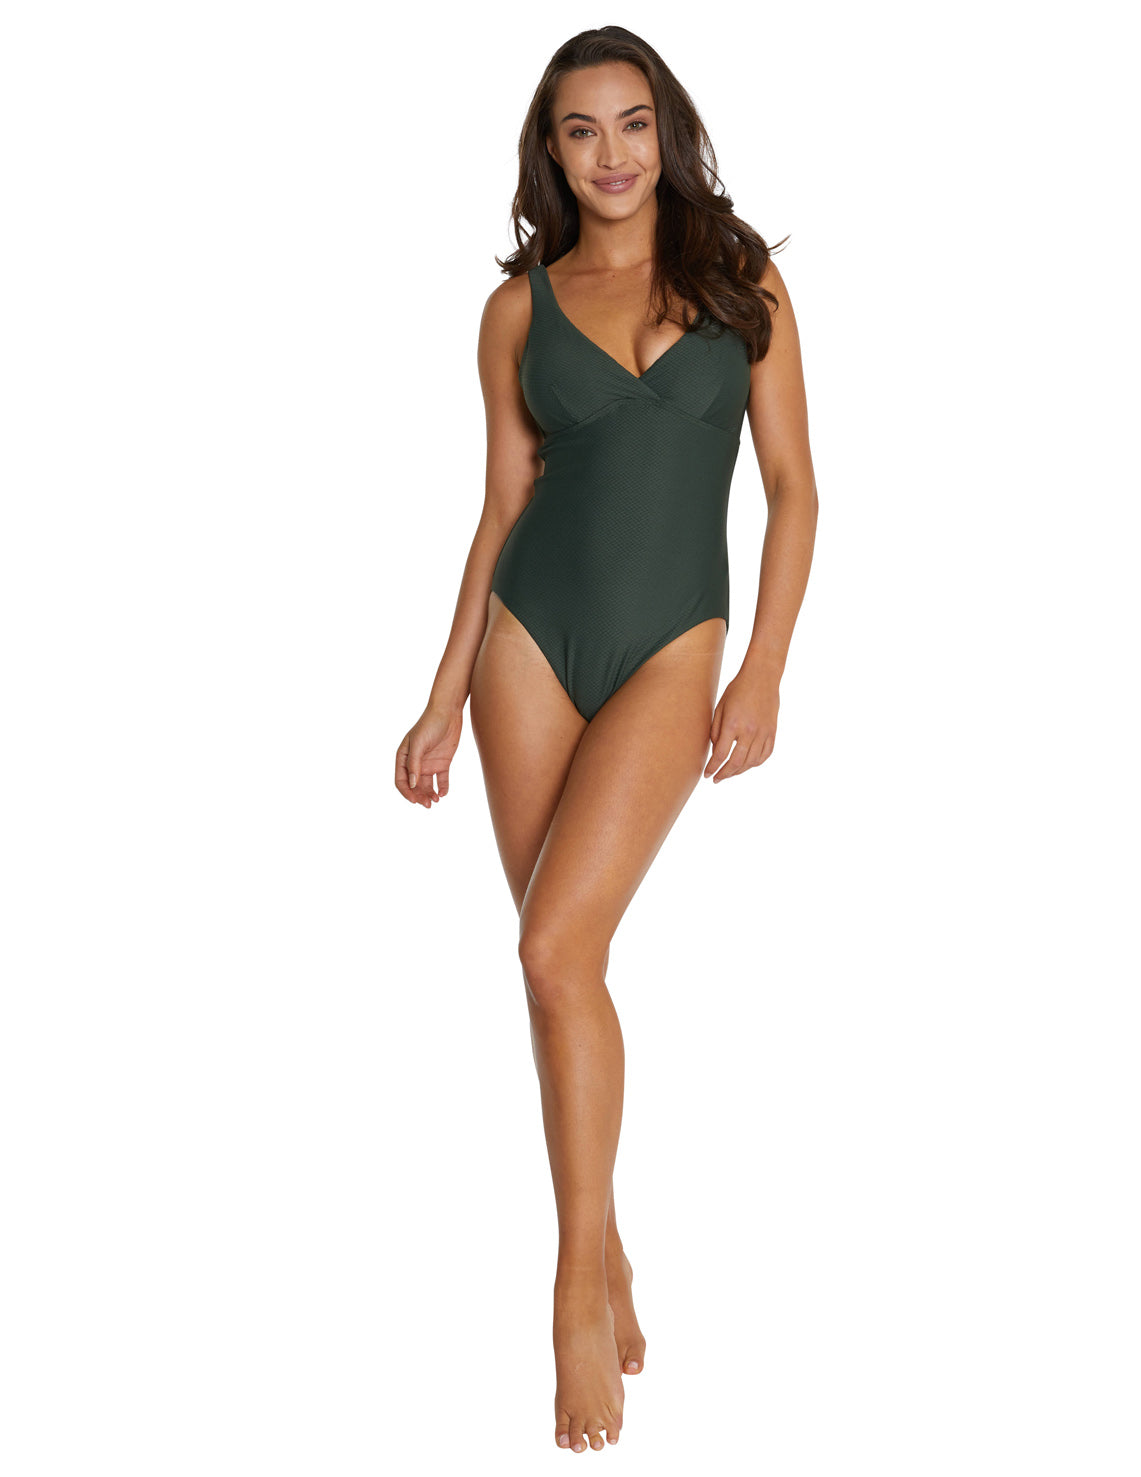 ROCOCCO D-E LONGLINE ONE PIECE SWIMSUIT